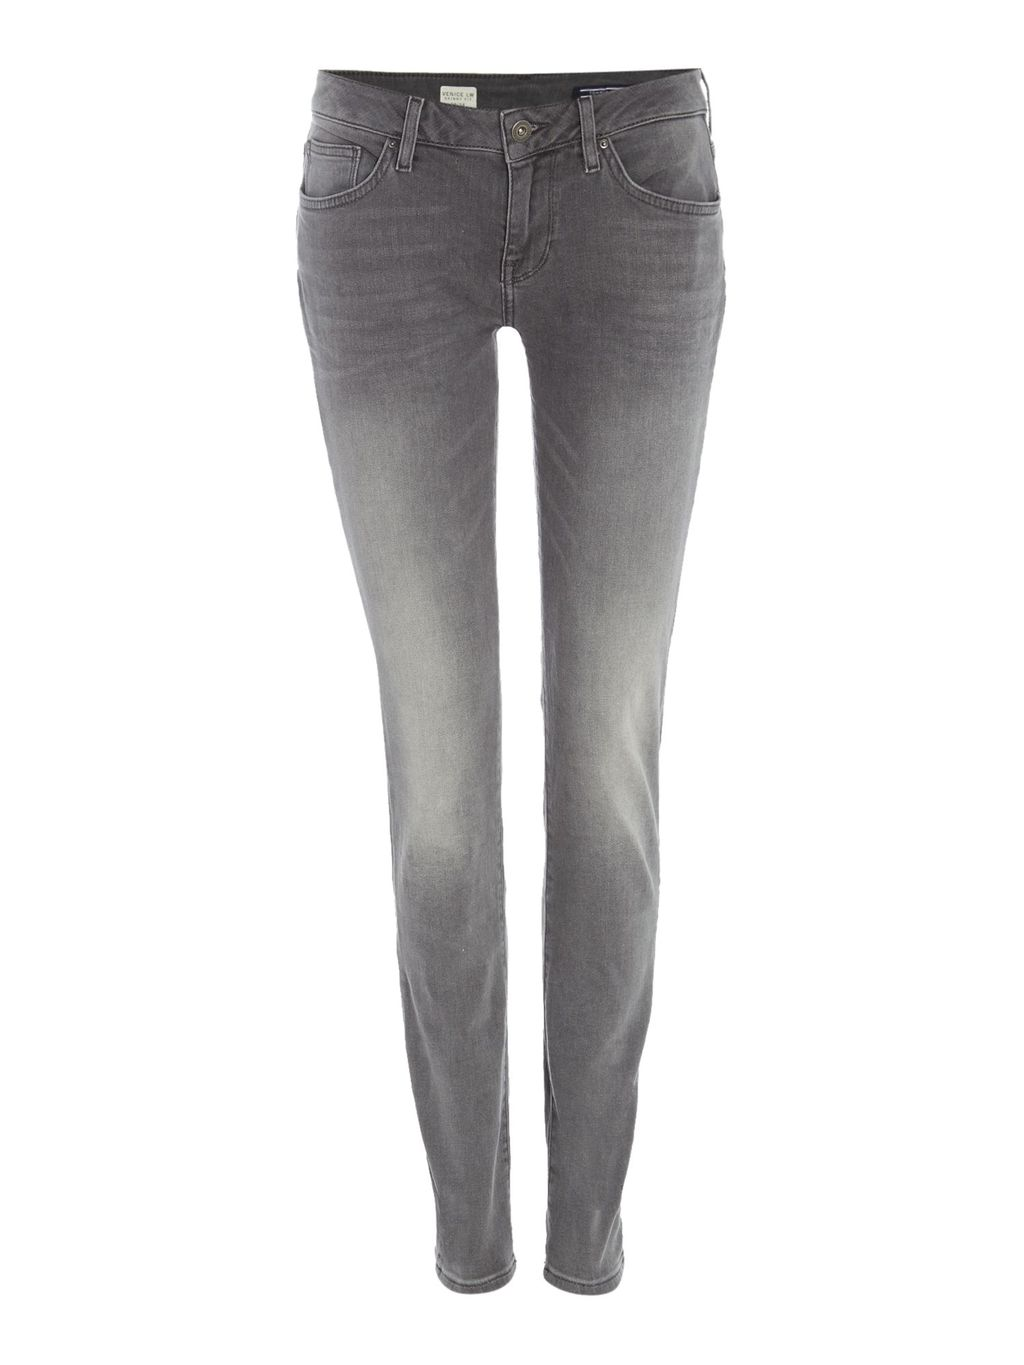 Venice Maily Jeans, Grey - style: skinny leg; length: standard; pattern: plain; pocket detail: traditional 5 pocket; waist: mid/regular rise; predominant colour: mid grey; occasions: casual; fibres: cotton - stretch; jeans detail: shading down centre of thigh; texture group: denim; pattern type: fabric; season: s/s 2016